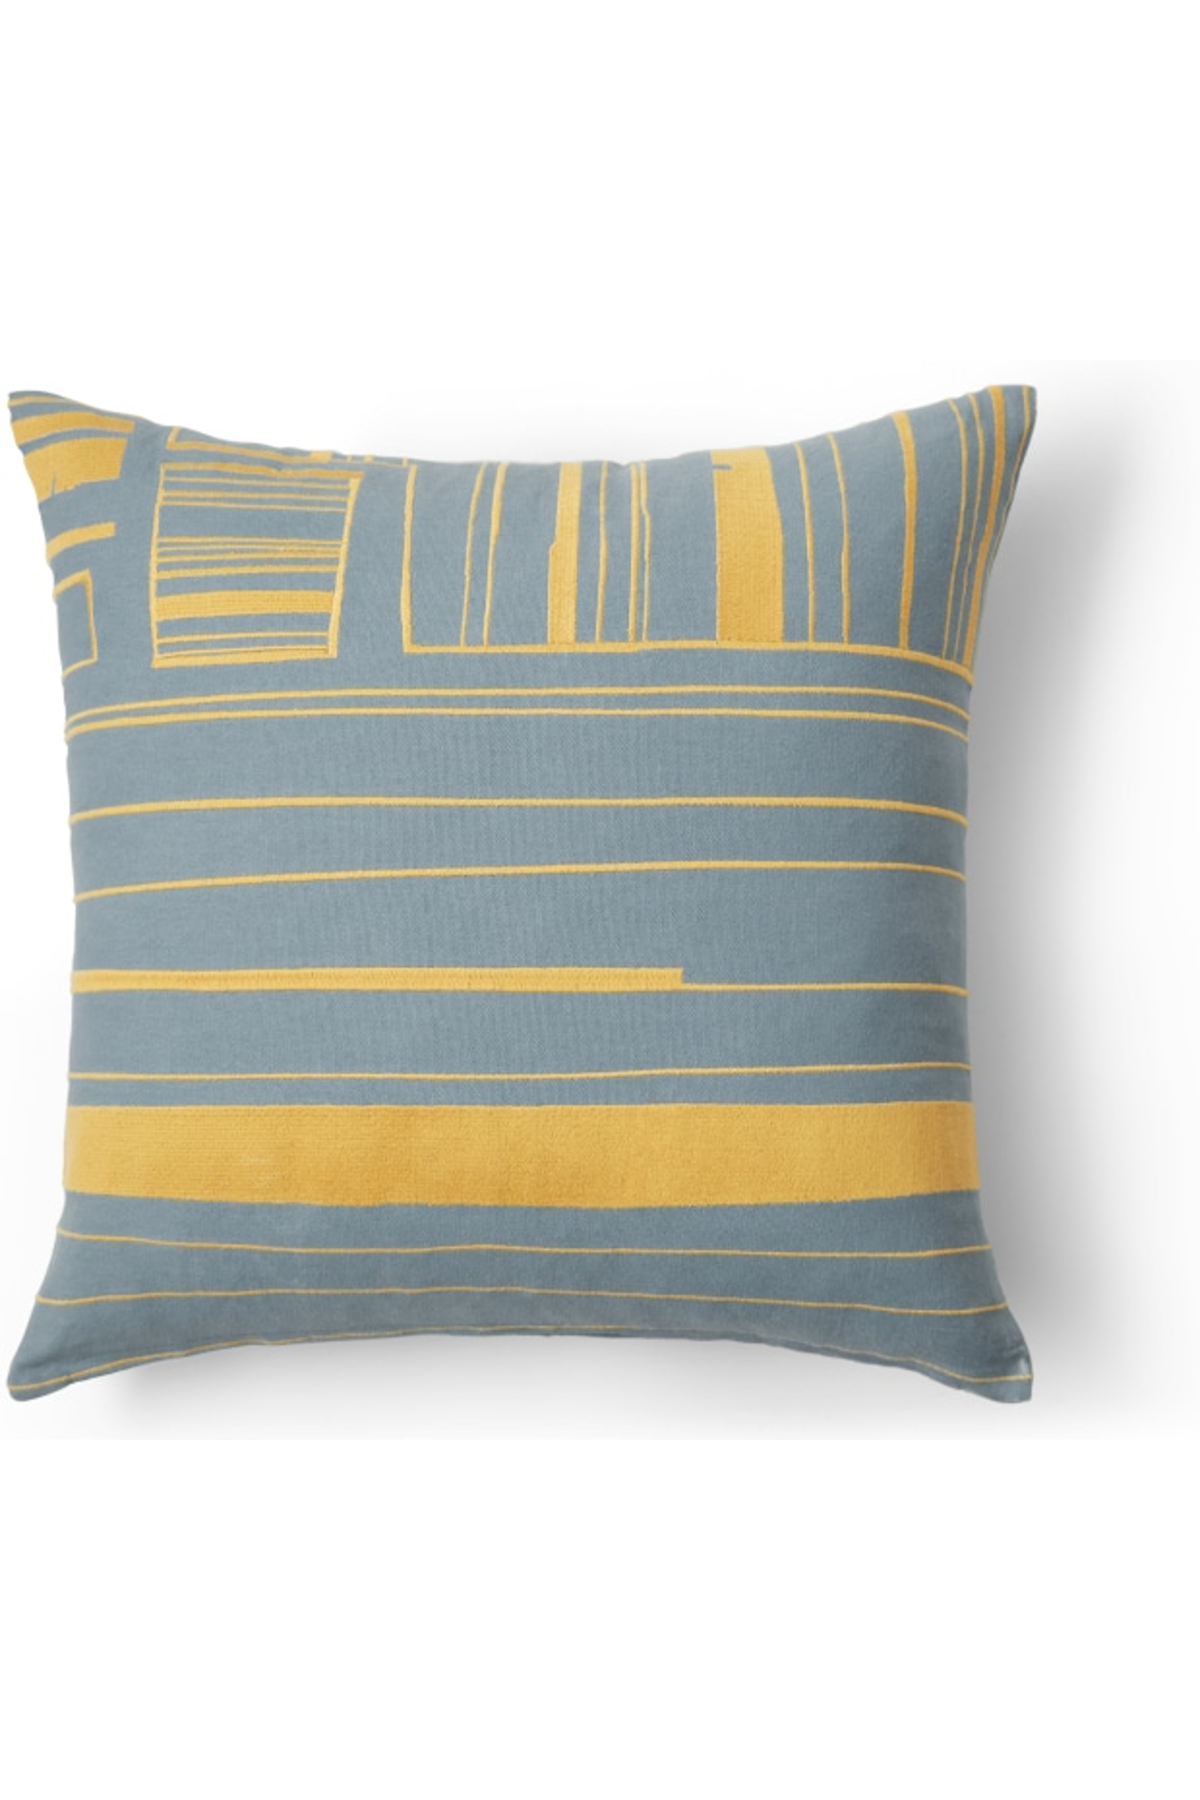 Uno Cushion, 45x45cm, Yellow and Blue Cushions